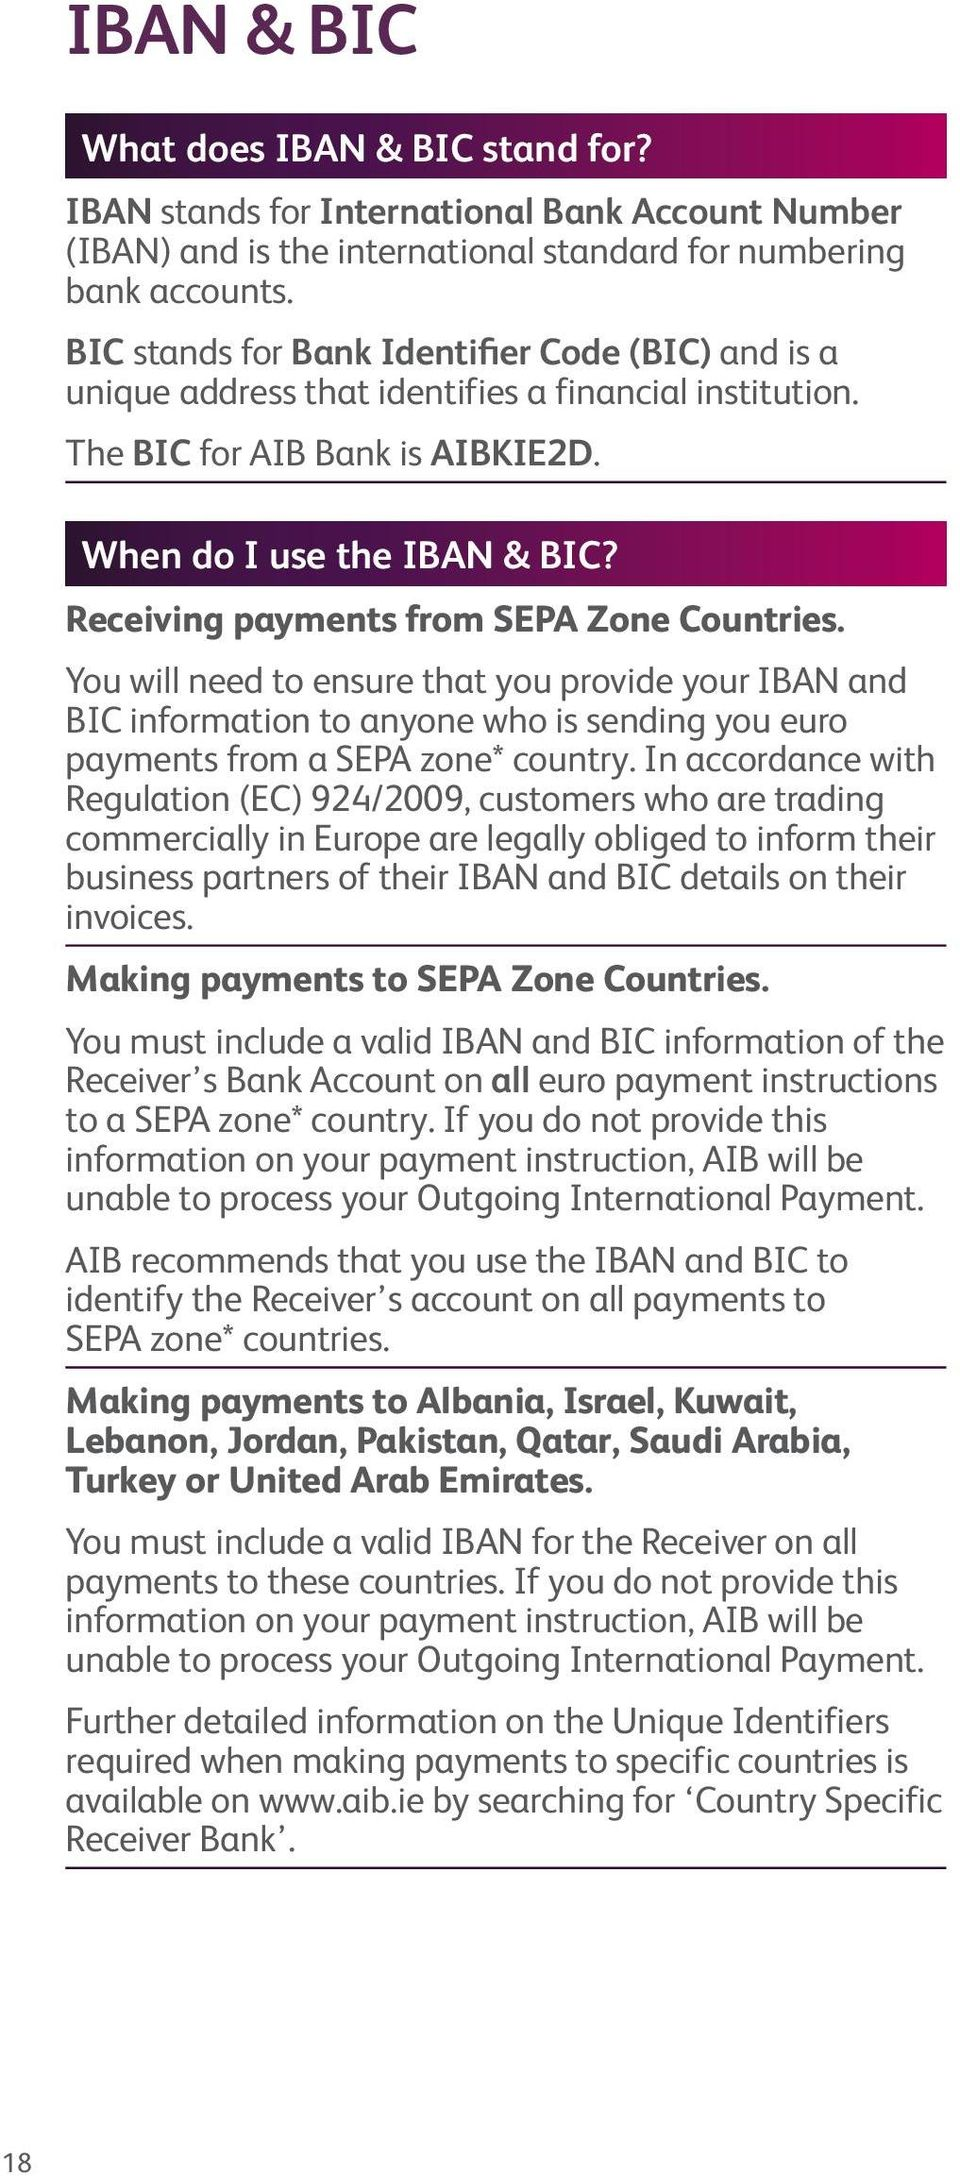 Receiving payments from SEPA Zone Countries. You will need to ensure that you provide your IBAN and BIC information to anyone who is sending you euro payments from a SEPA zone* country.